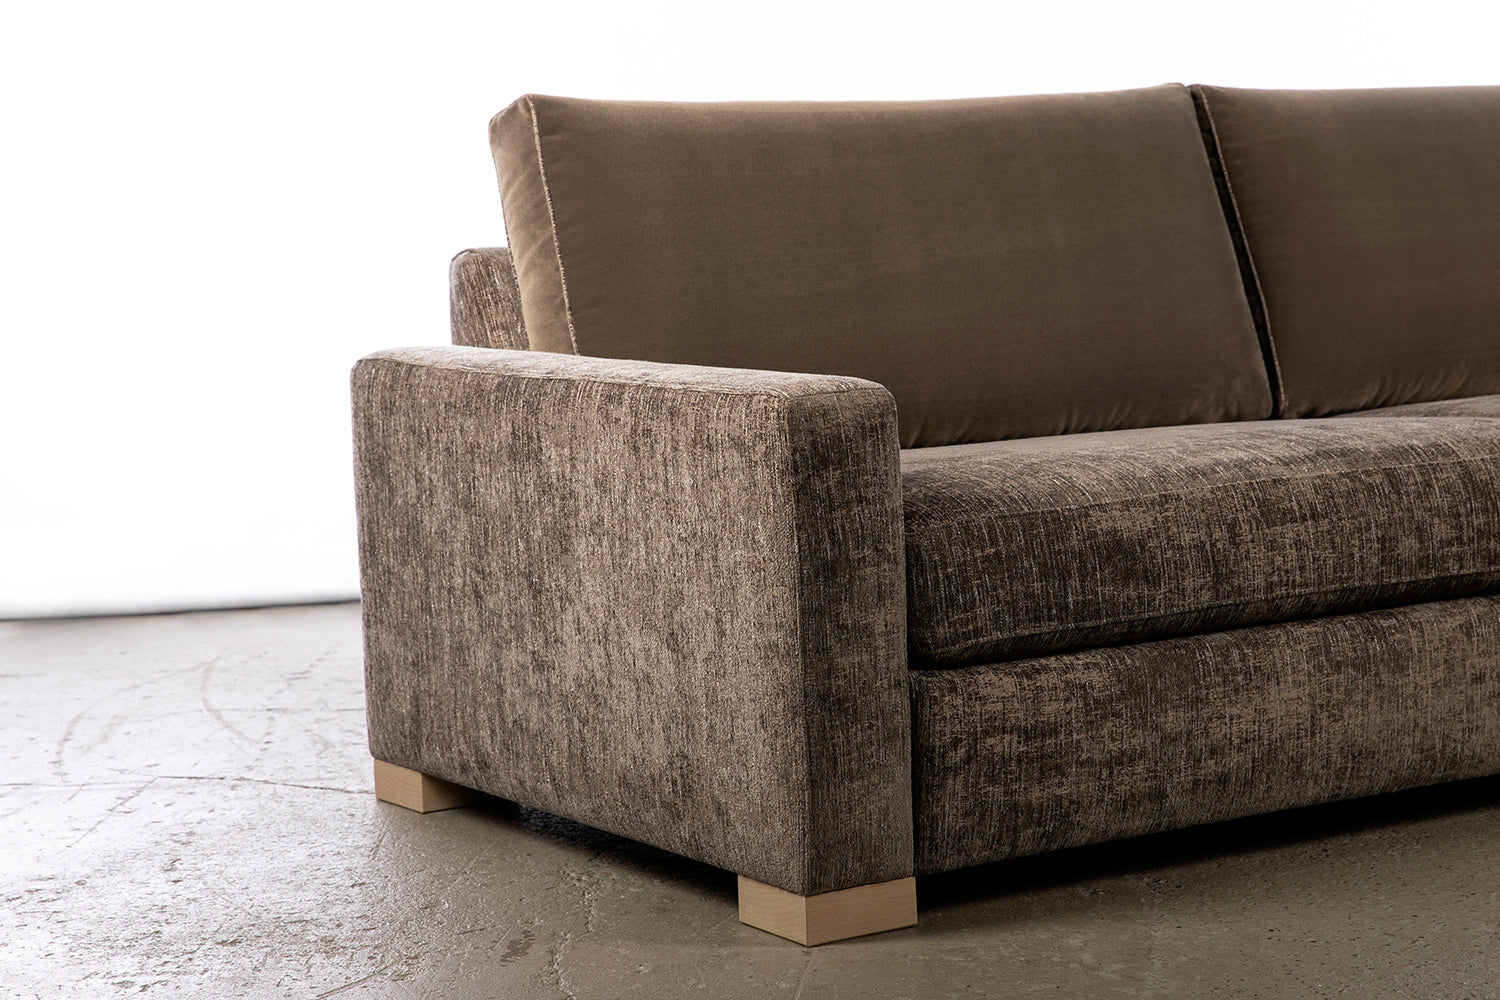 ffabb Coasty Sofa made in North Vancouver